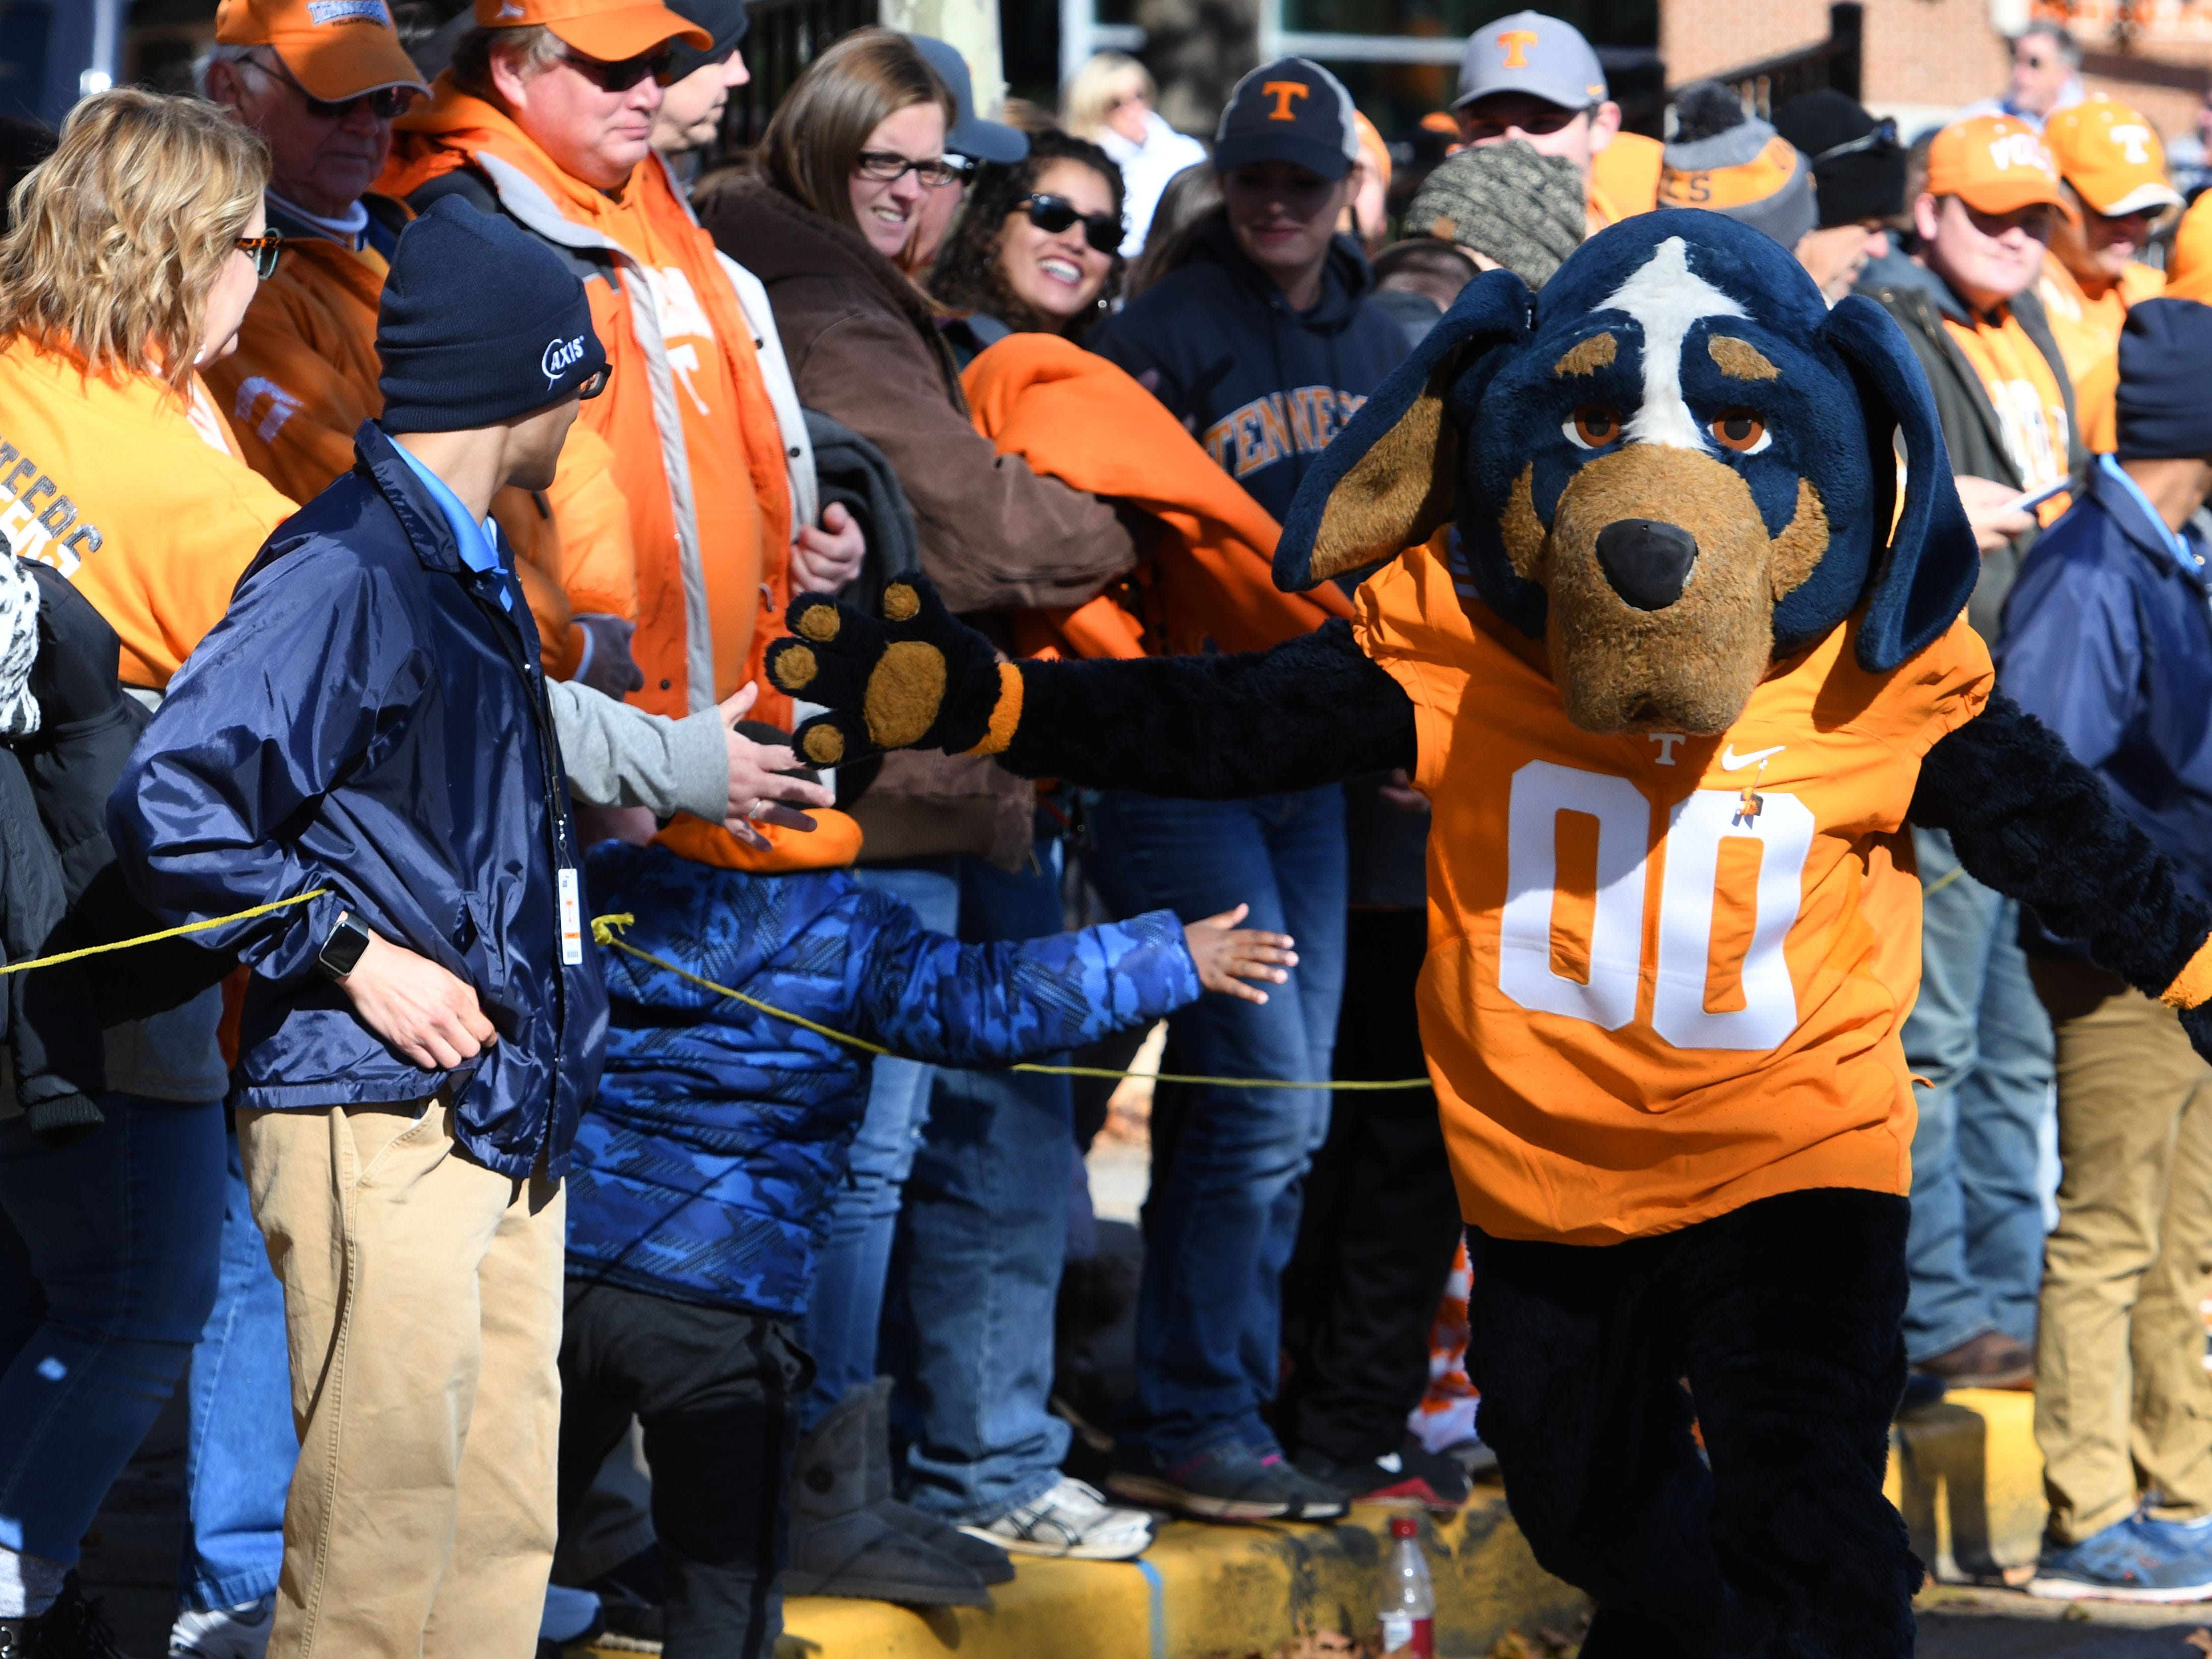 Smokey during the Vol Walk before the Kentucky game Saturday, November 10, 2018 at Neyland Stadium in Knoxville, Tenn.